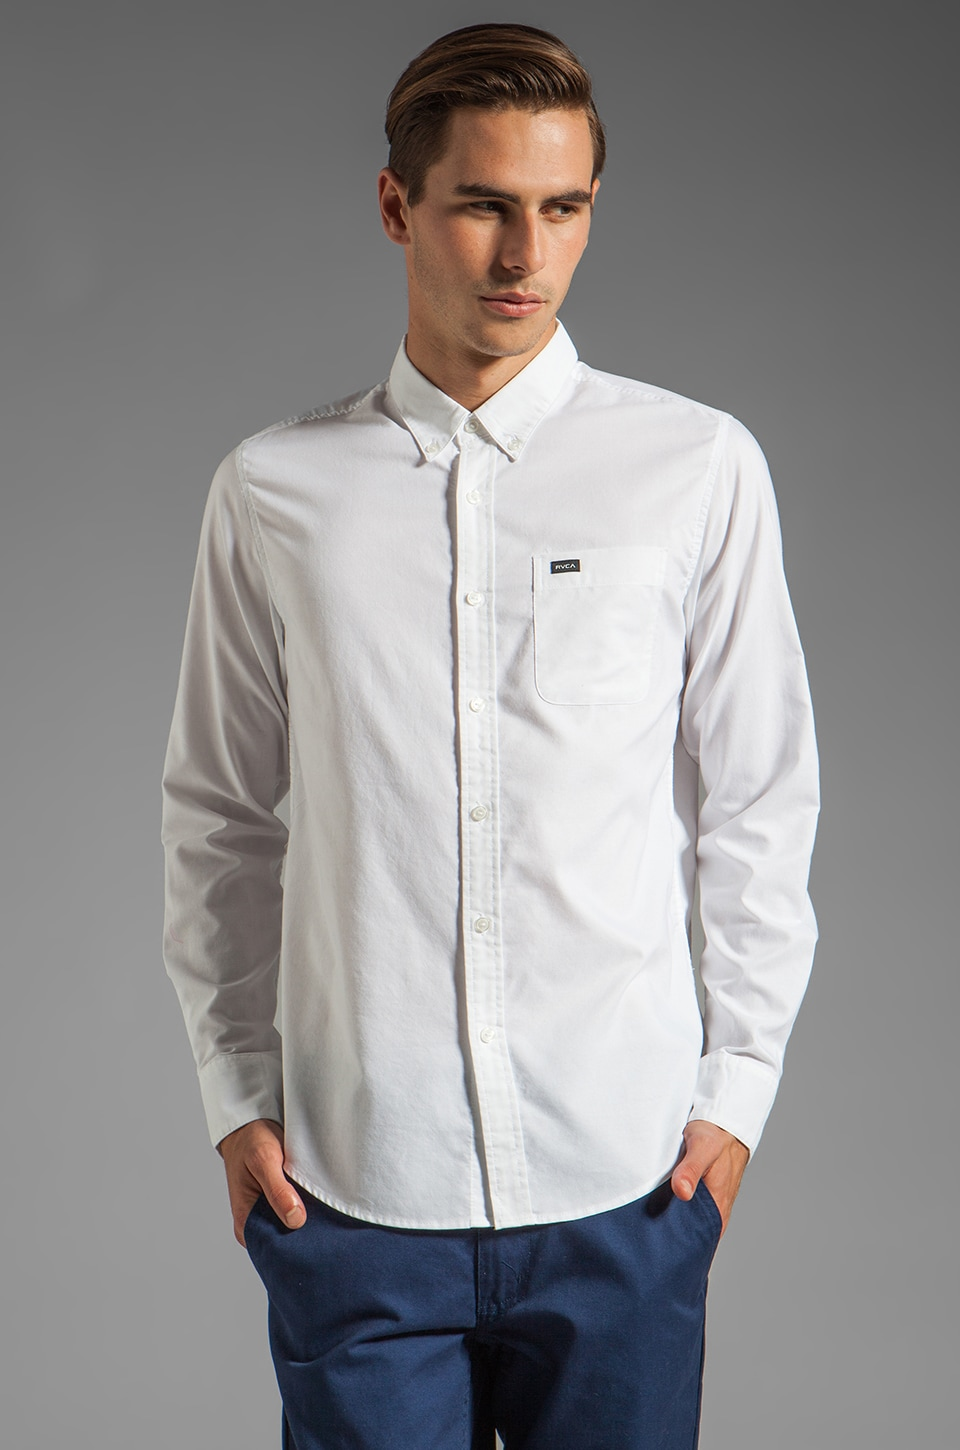 RVCA That'll Do Oxford L/S Shirt in White